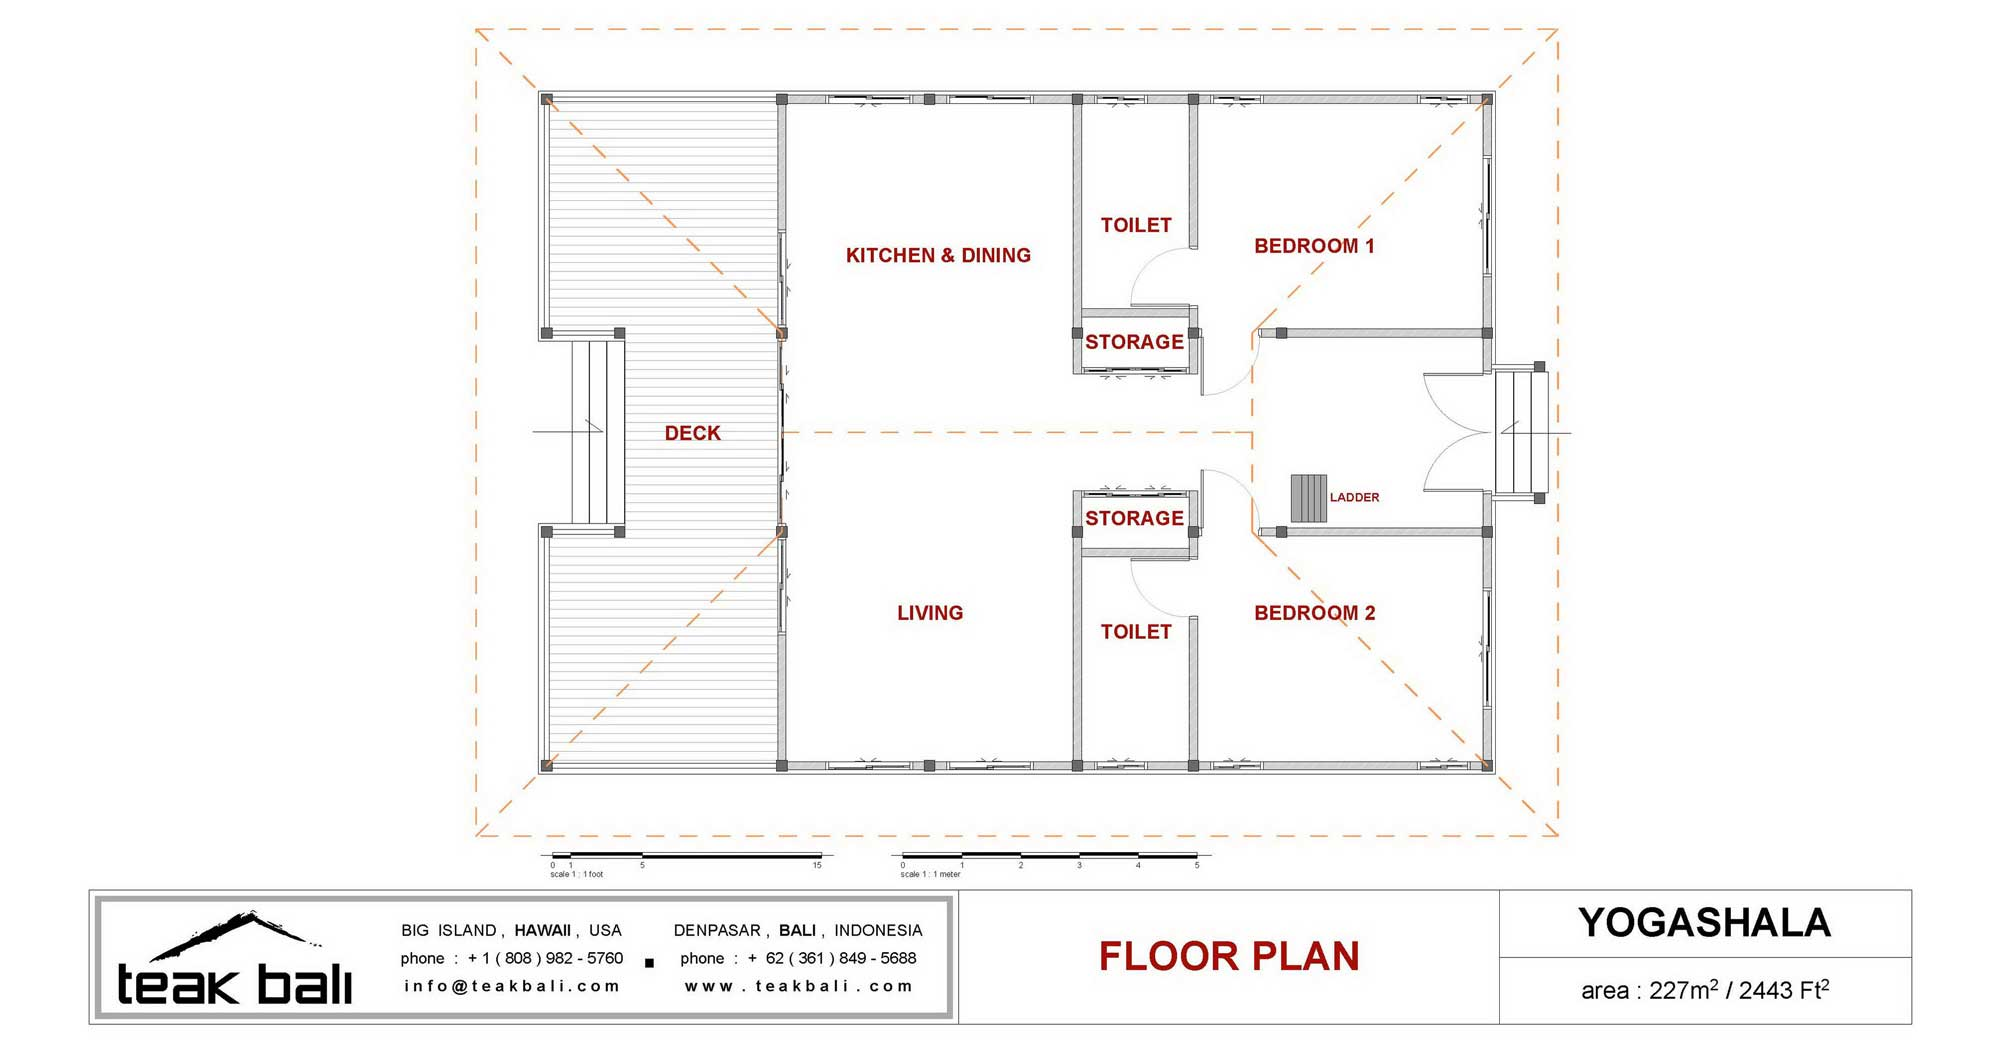 Yogashala Design Hawaii Floor Plans Teak Bali